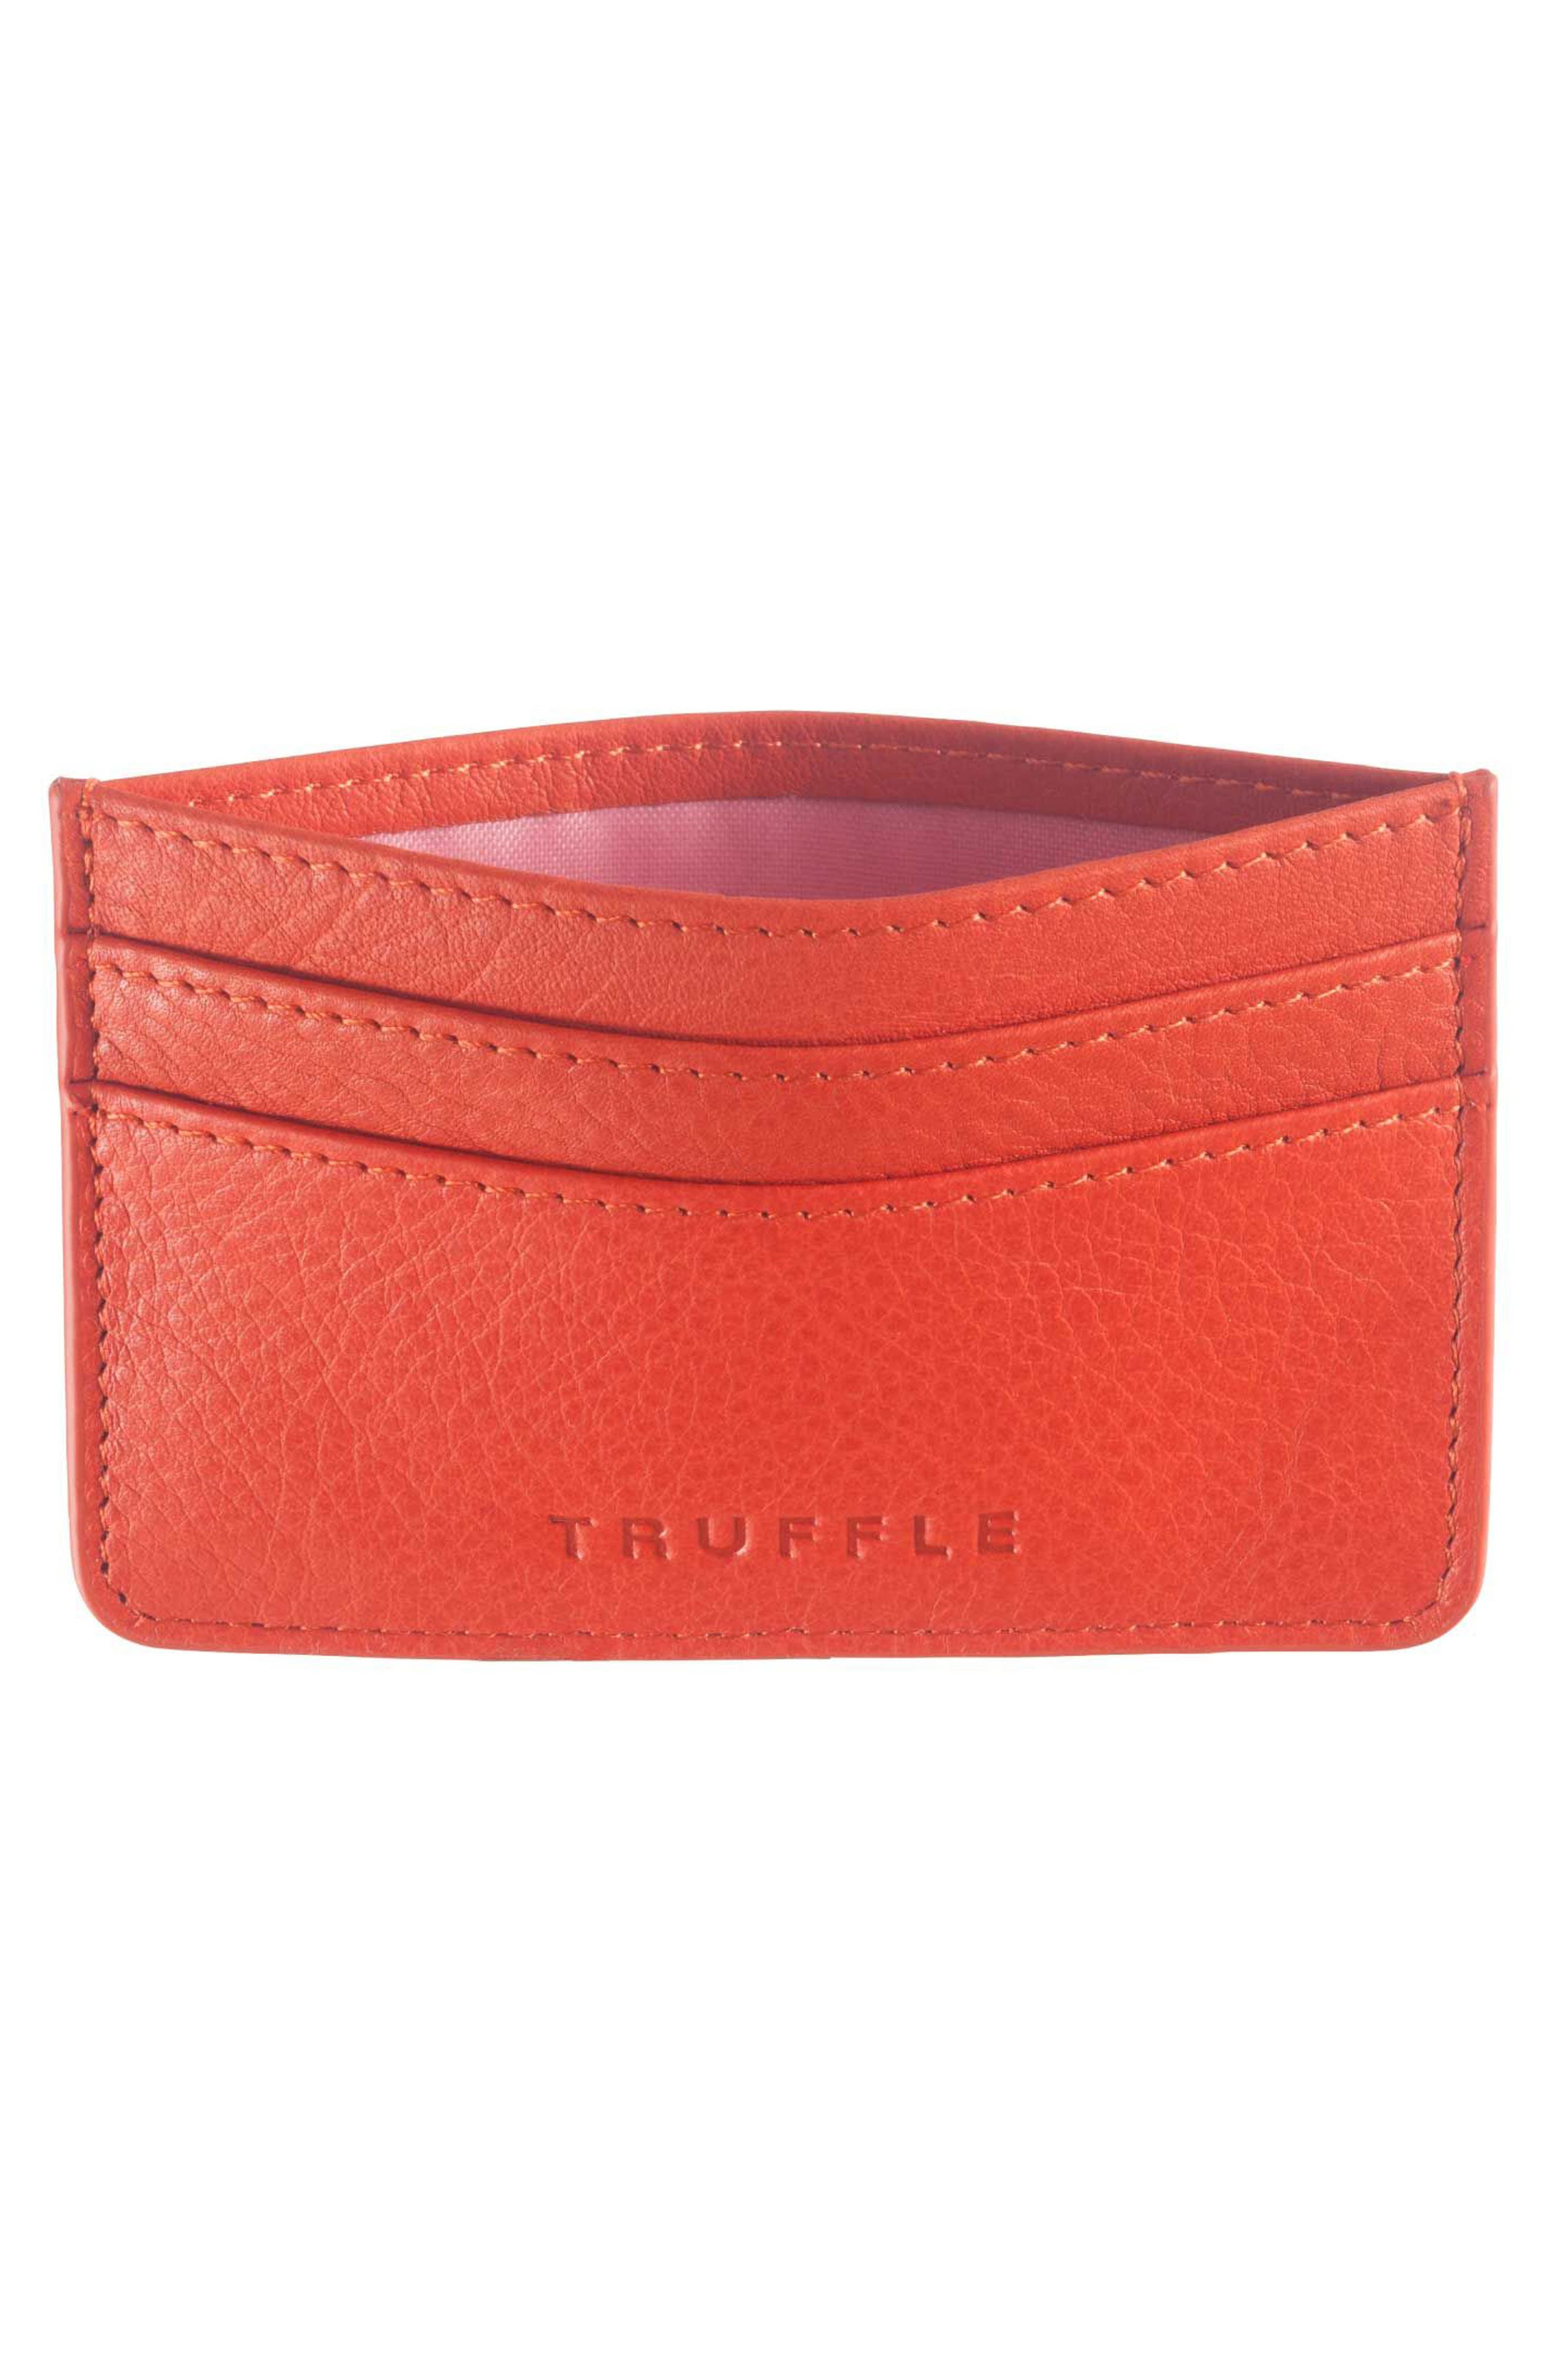 Privacy Leather Card Case,                             Alternate thumbnail 2, color,                             POPPY